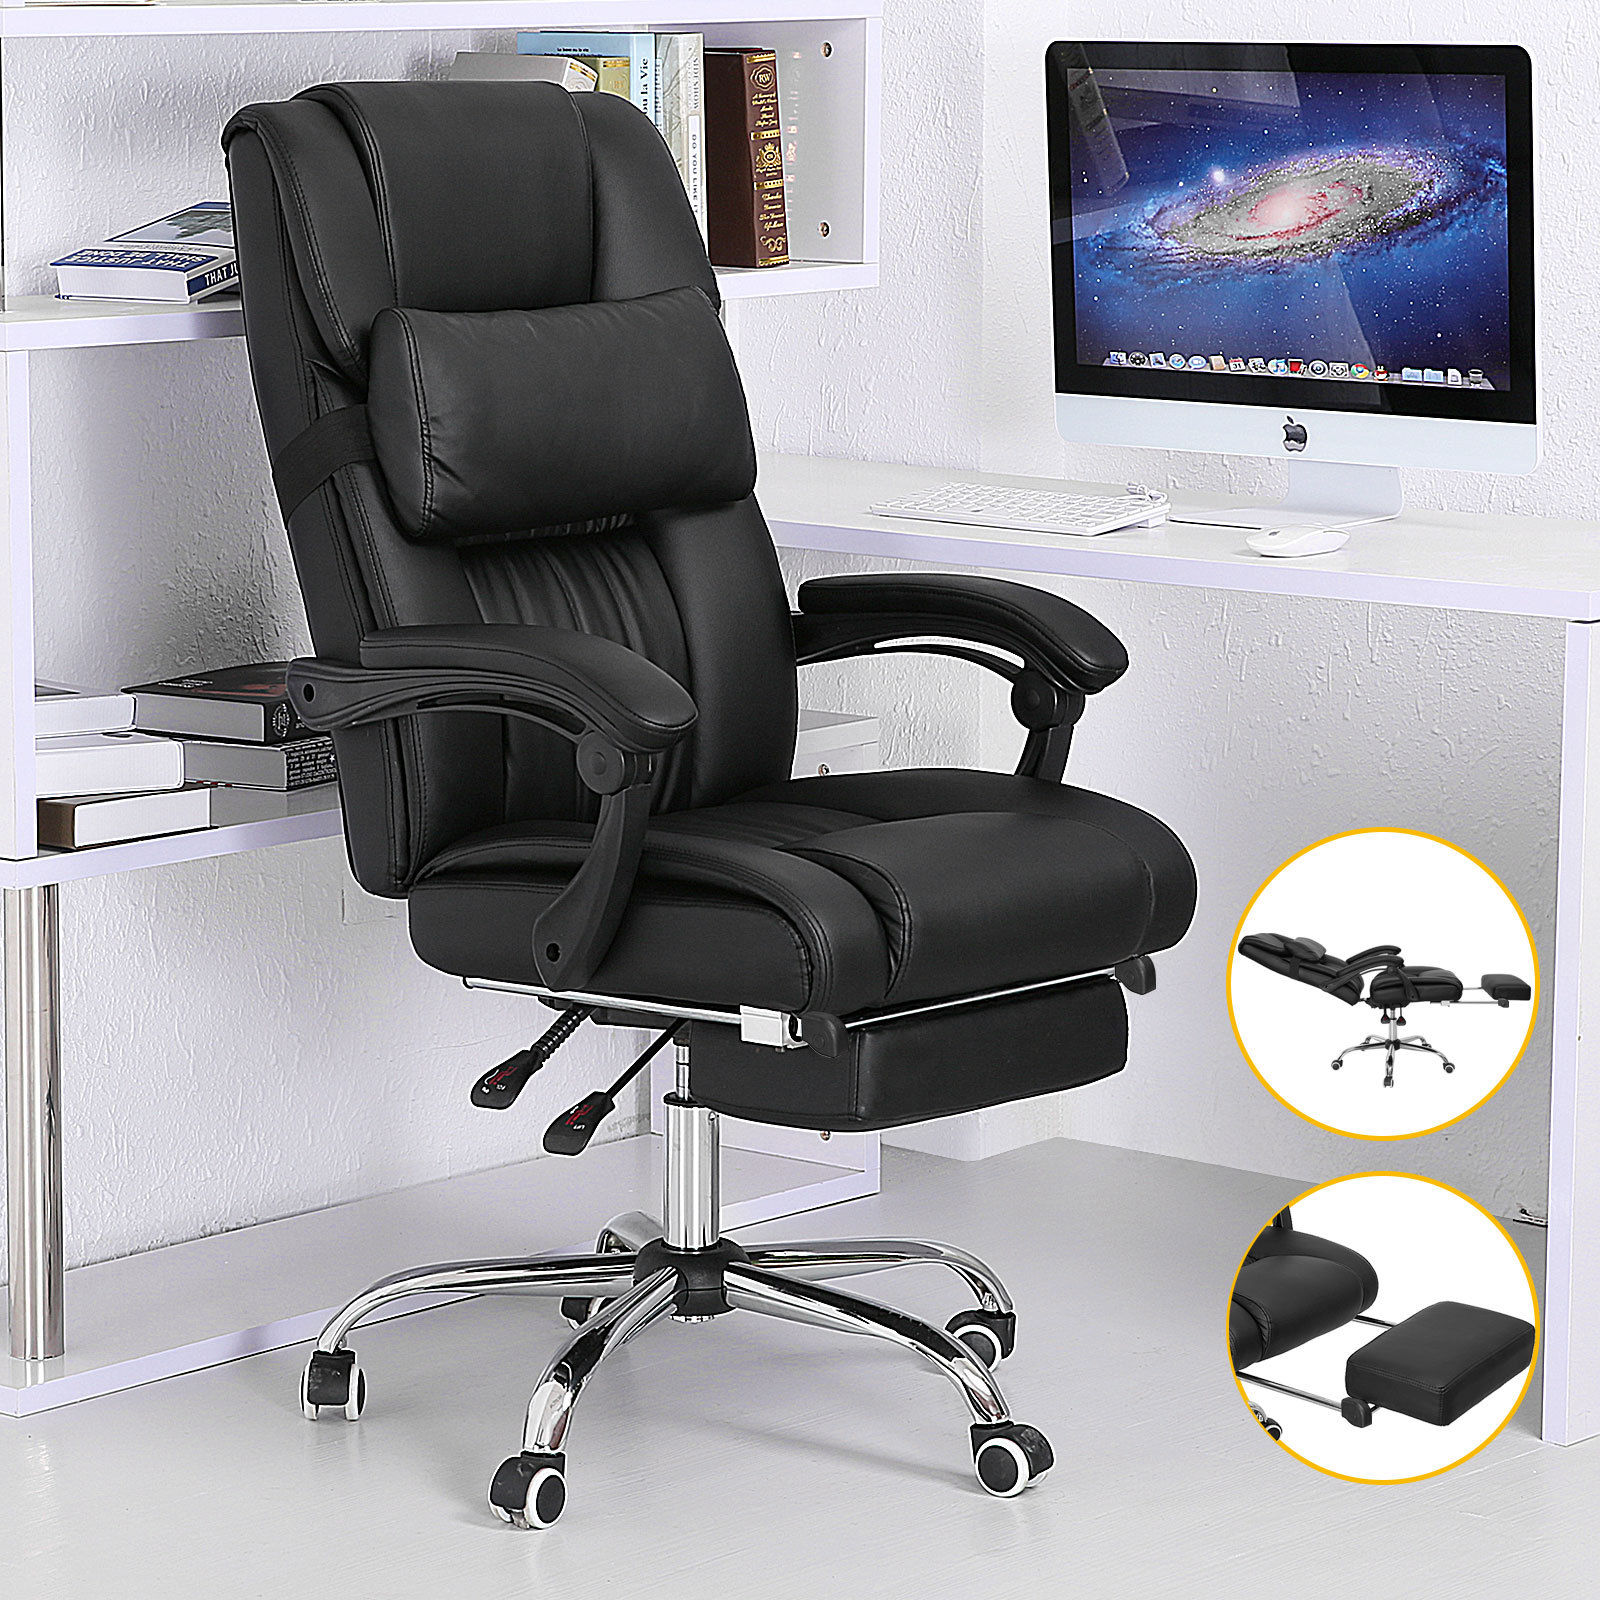 Super bright inc on walmart marketplace marketplace pulse for Super comfy office chair